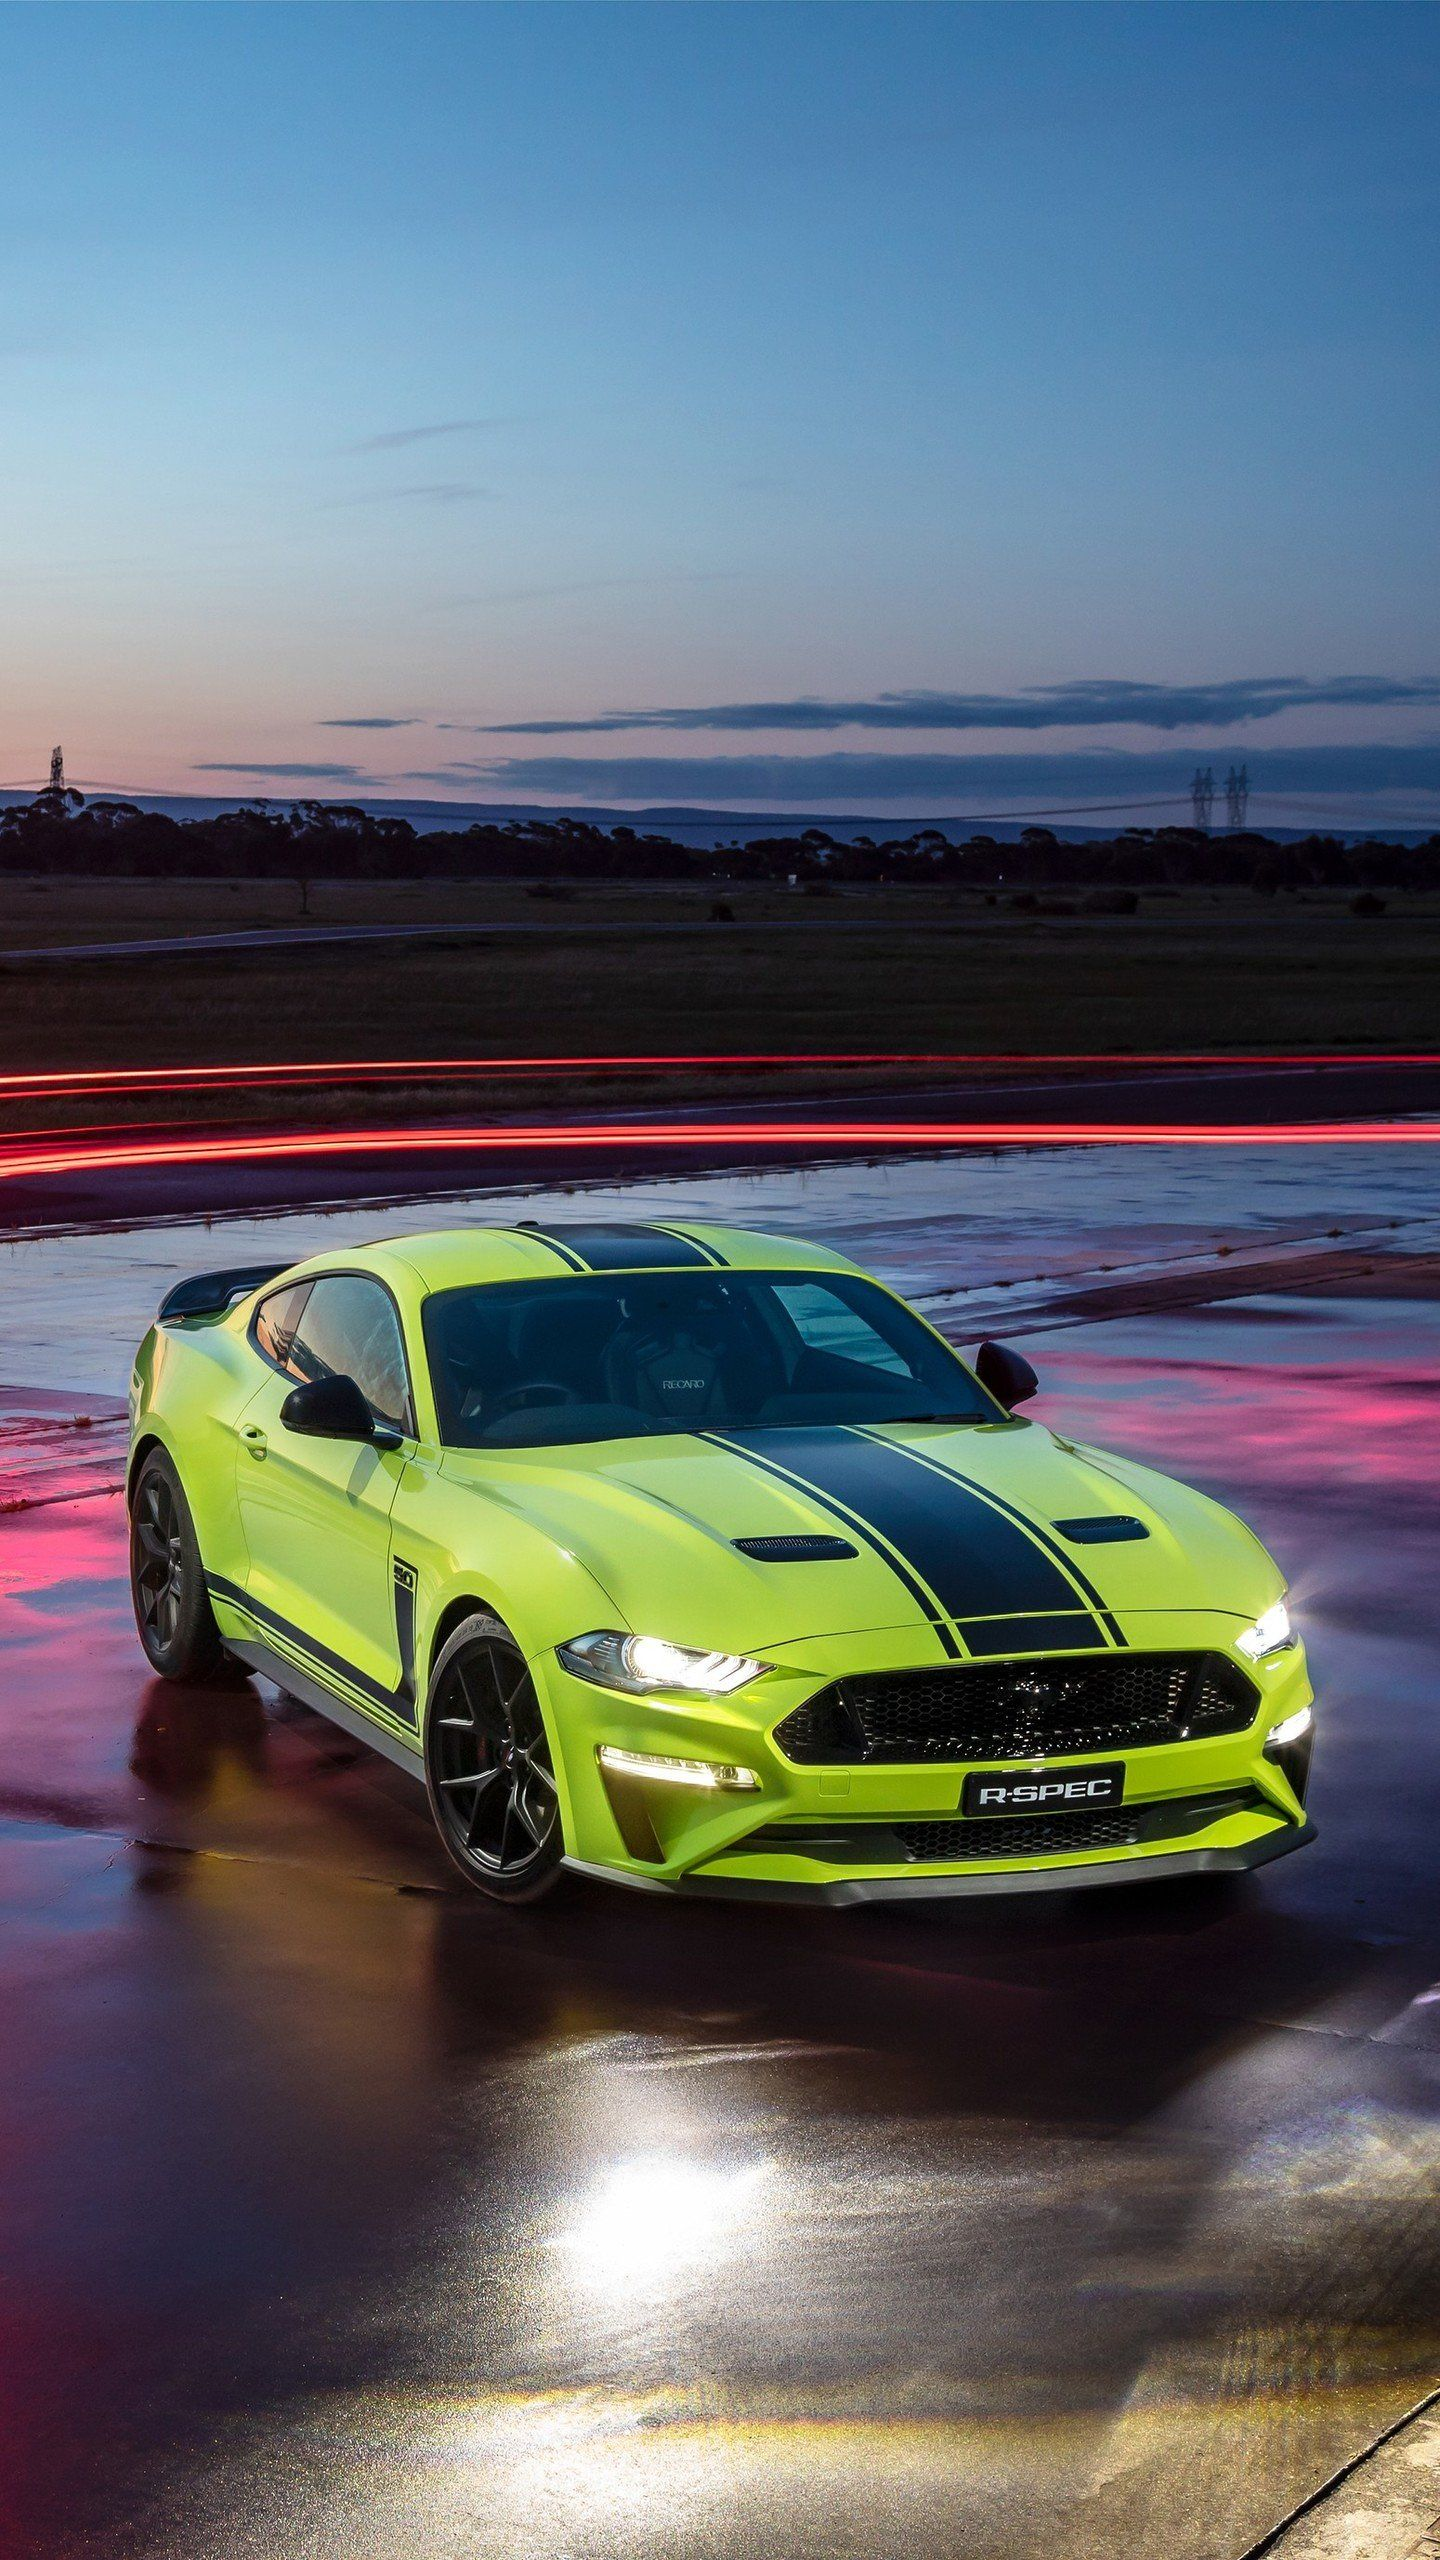 Ford Mustang Gt Fastback 2019 5k Hd Wallpaper With Images Ford Mustang Gt Ford Mustang Wallpaper Ford Mustang